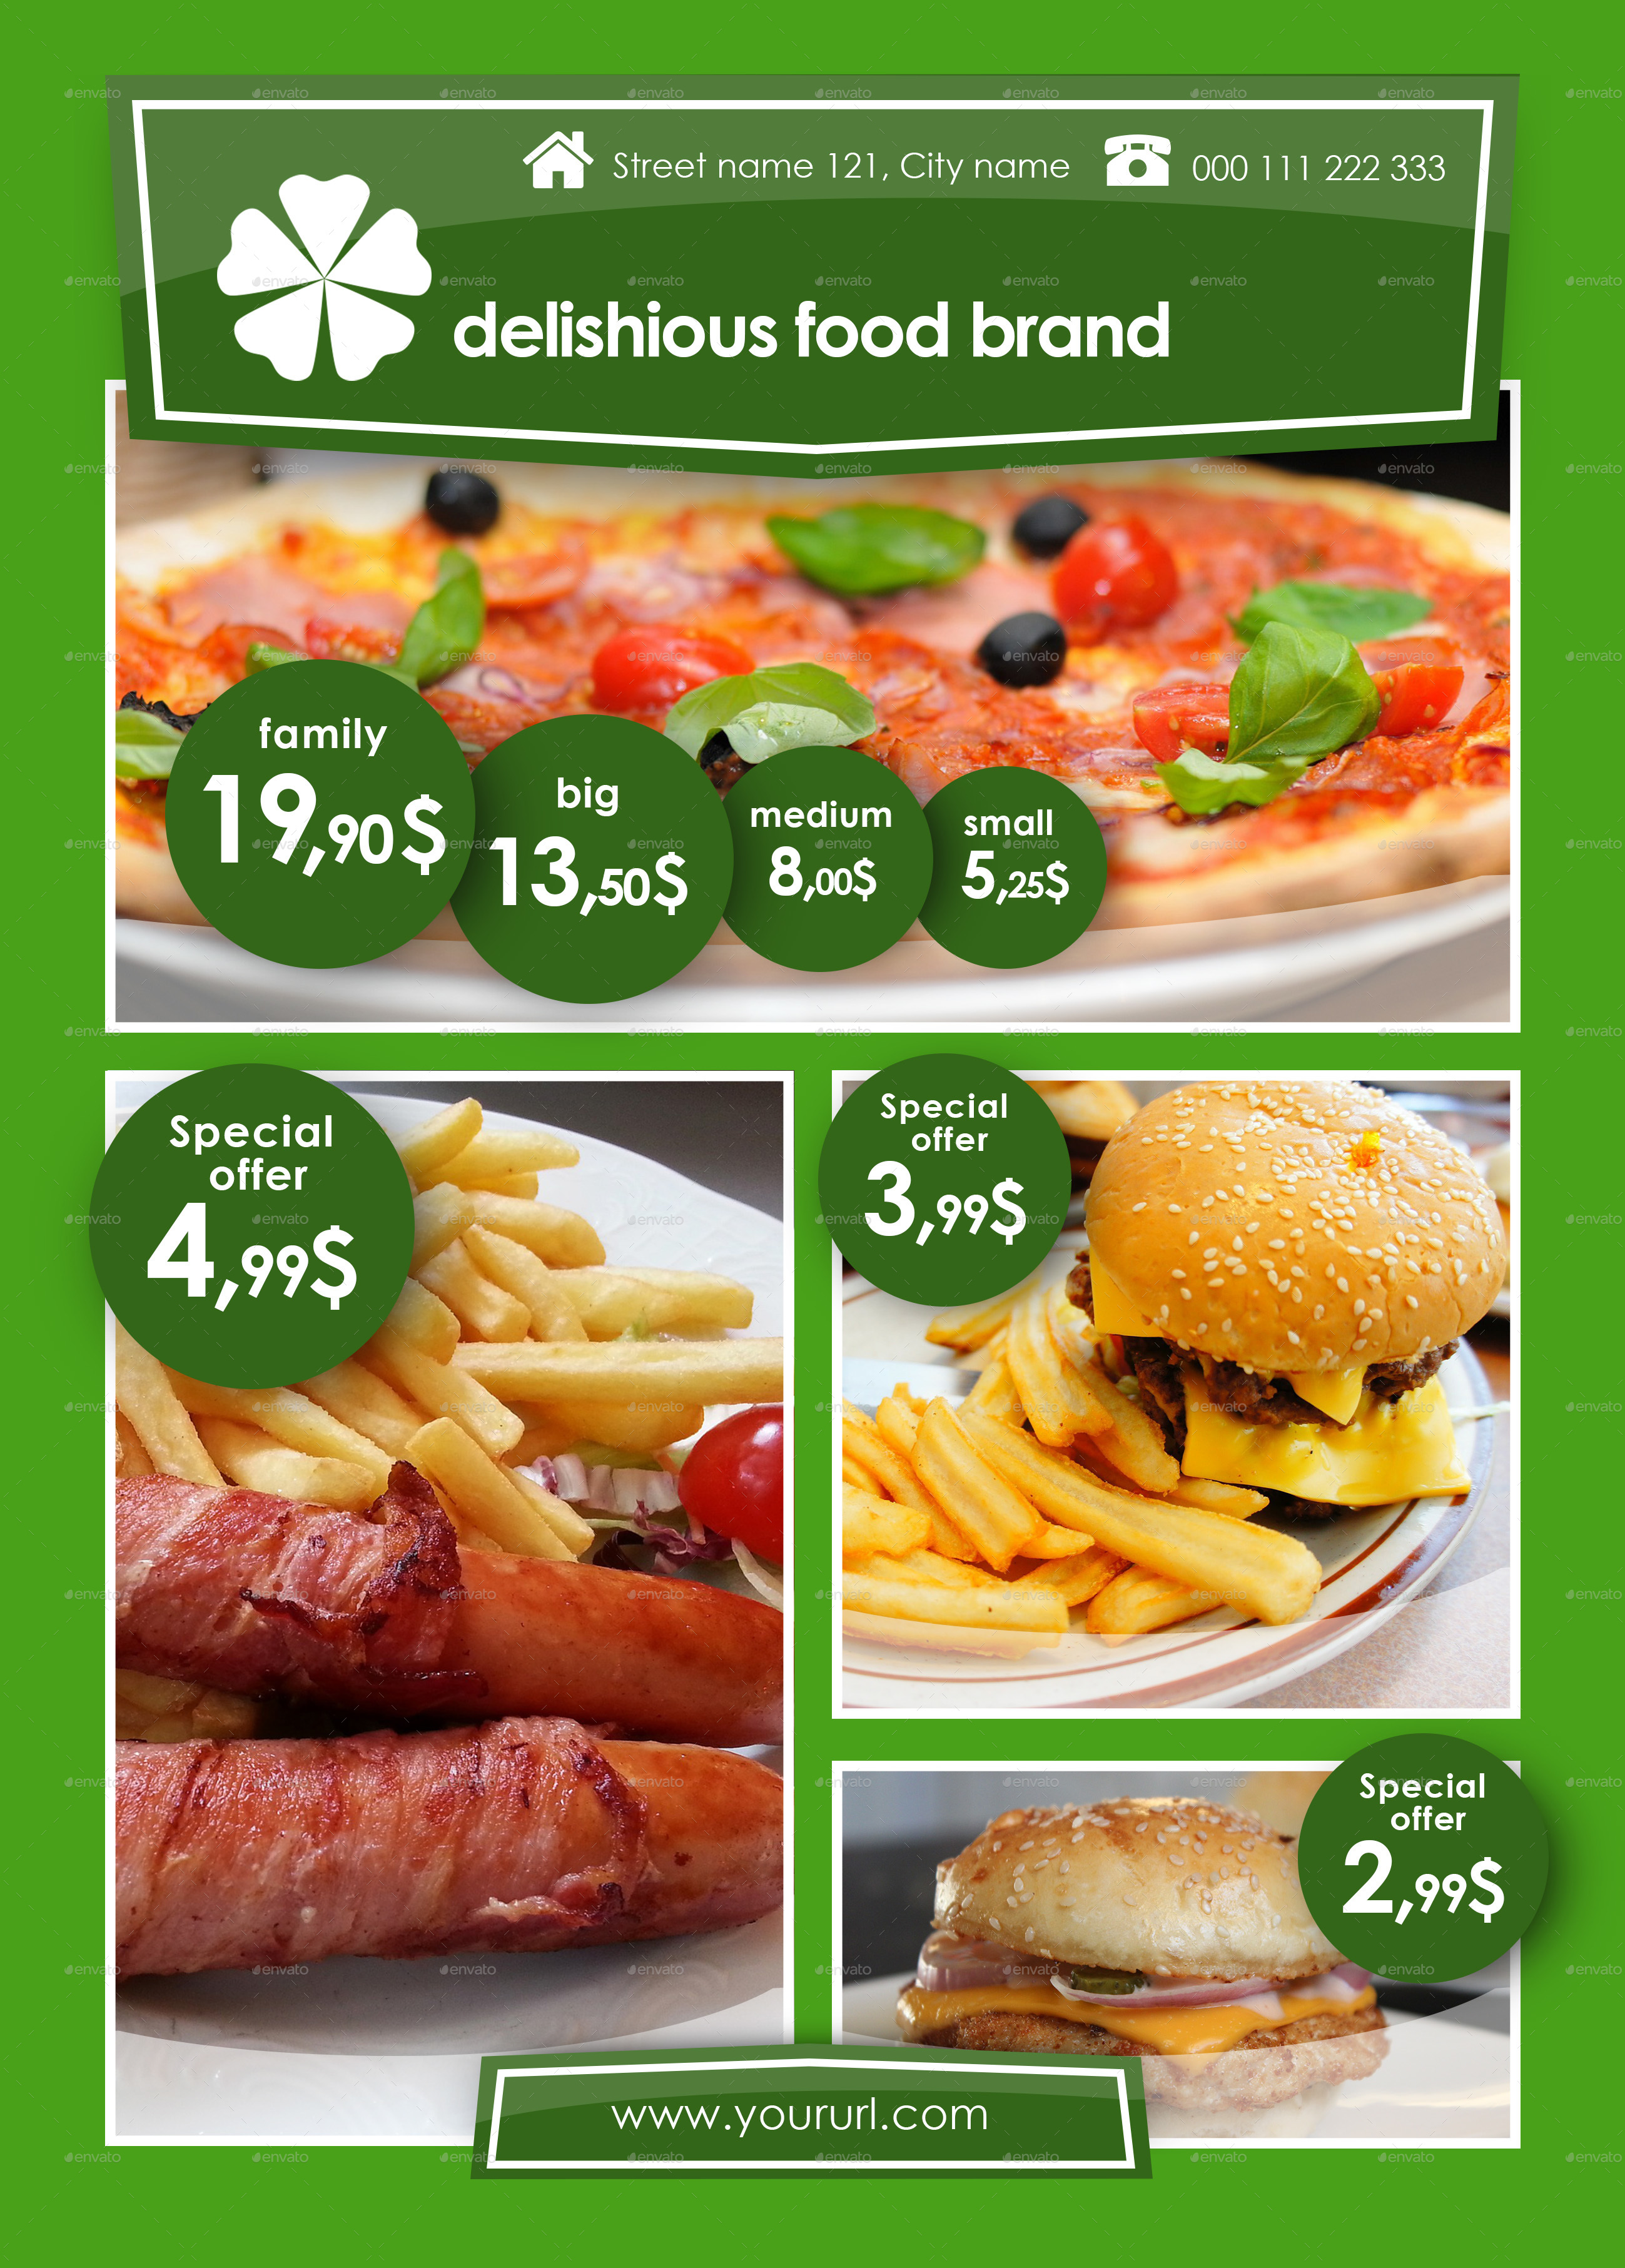 Fast Food A4 Template by LukasBBRS | GraphicRiver